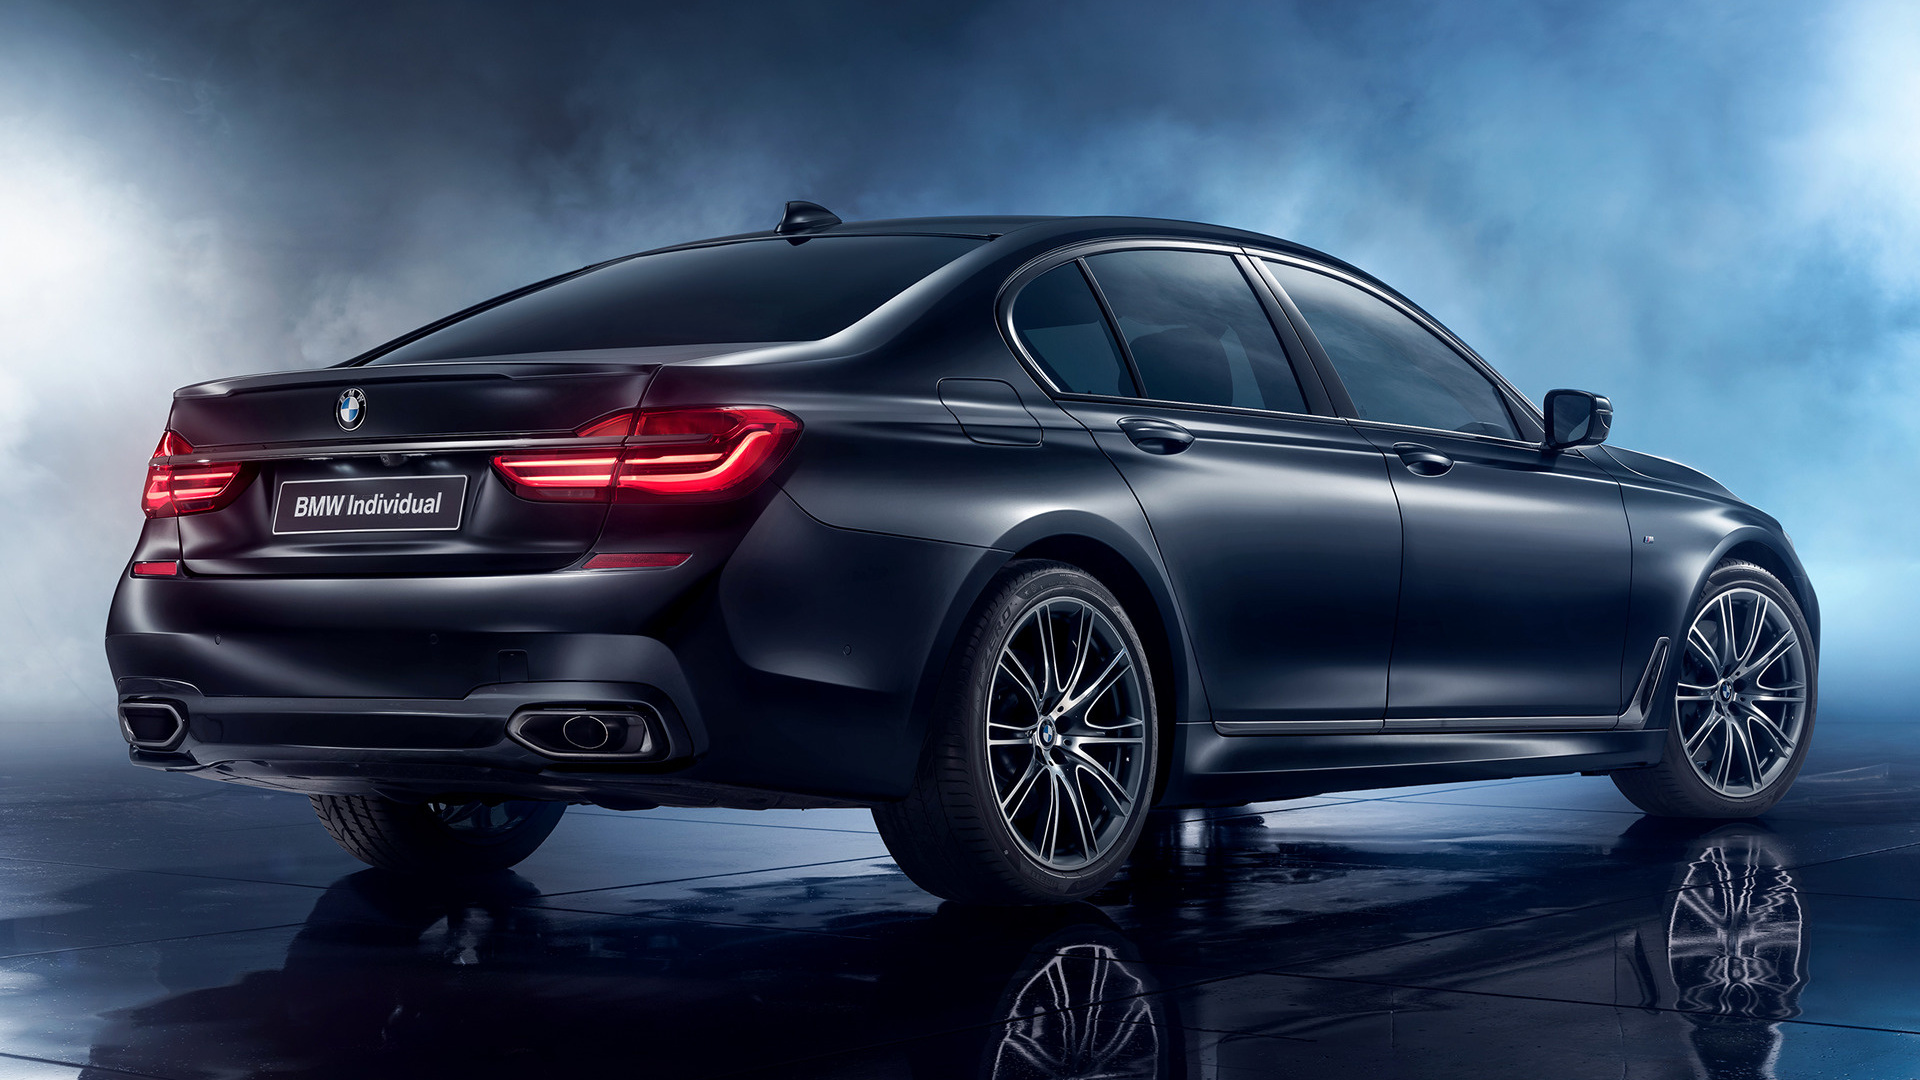 Wallpaper Bmw 7 Series Black Ice Edition 2017 4k